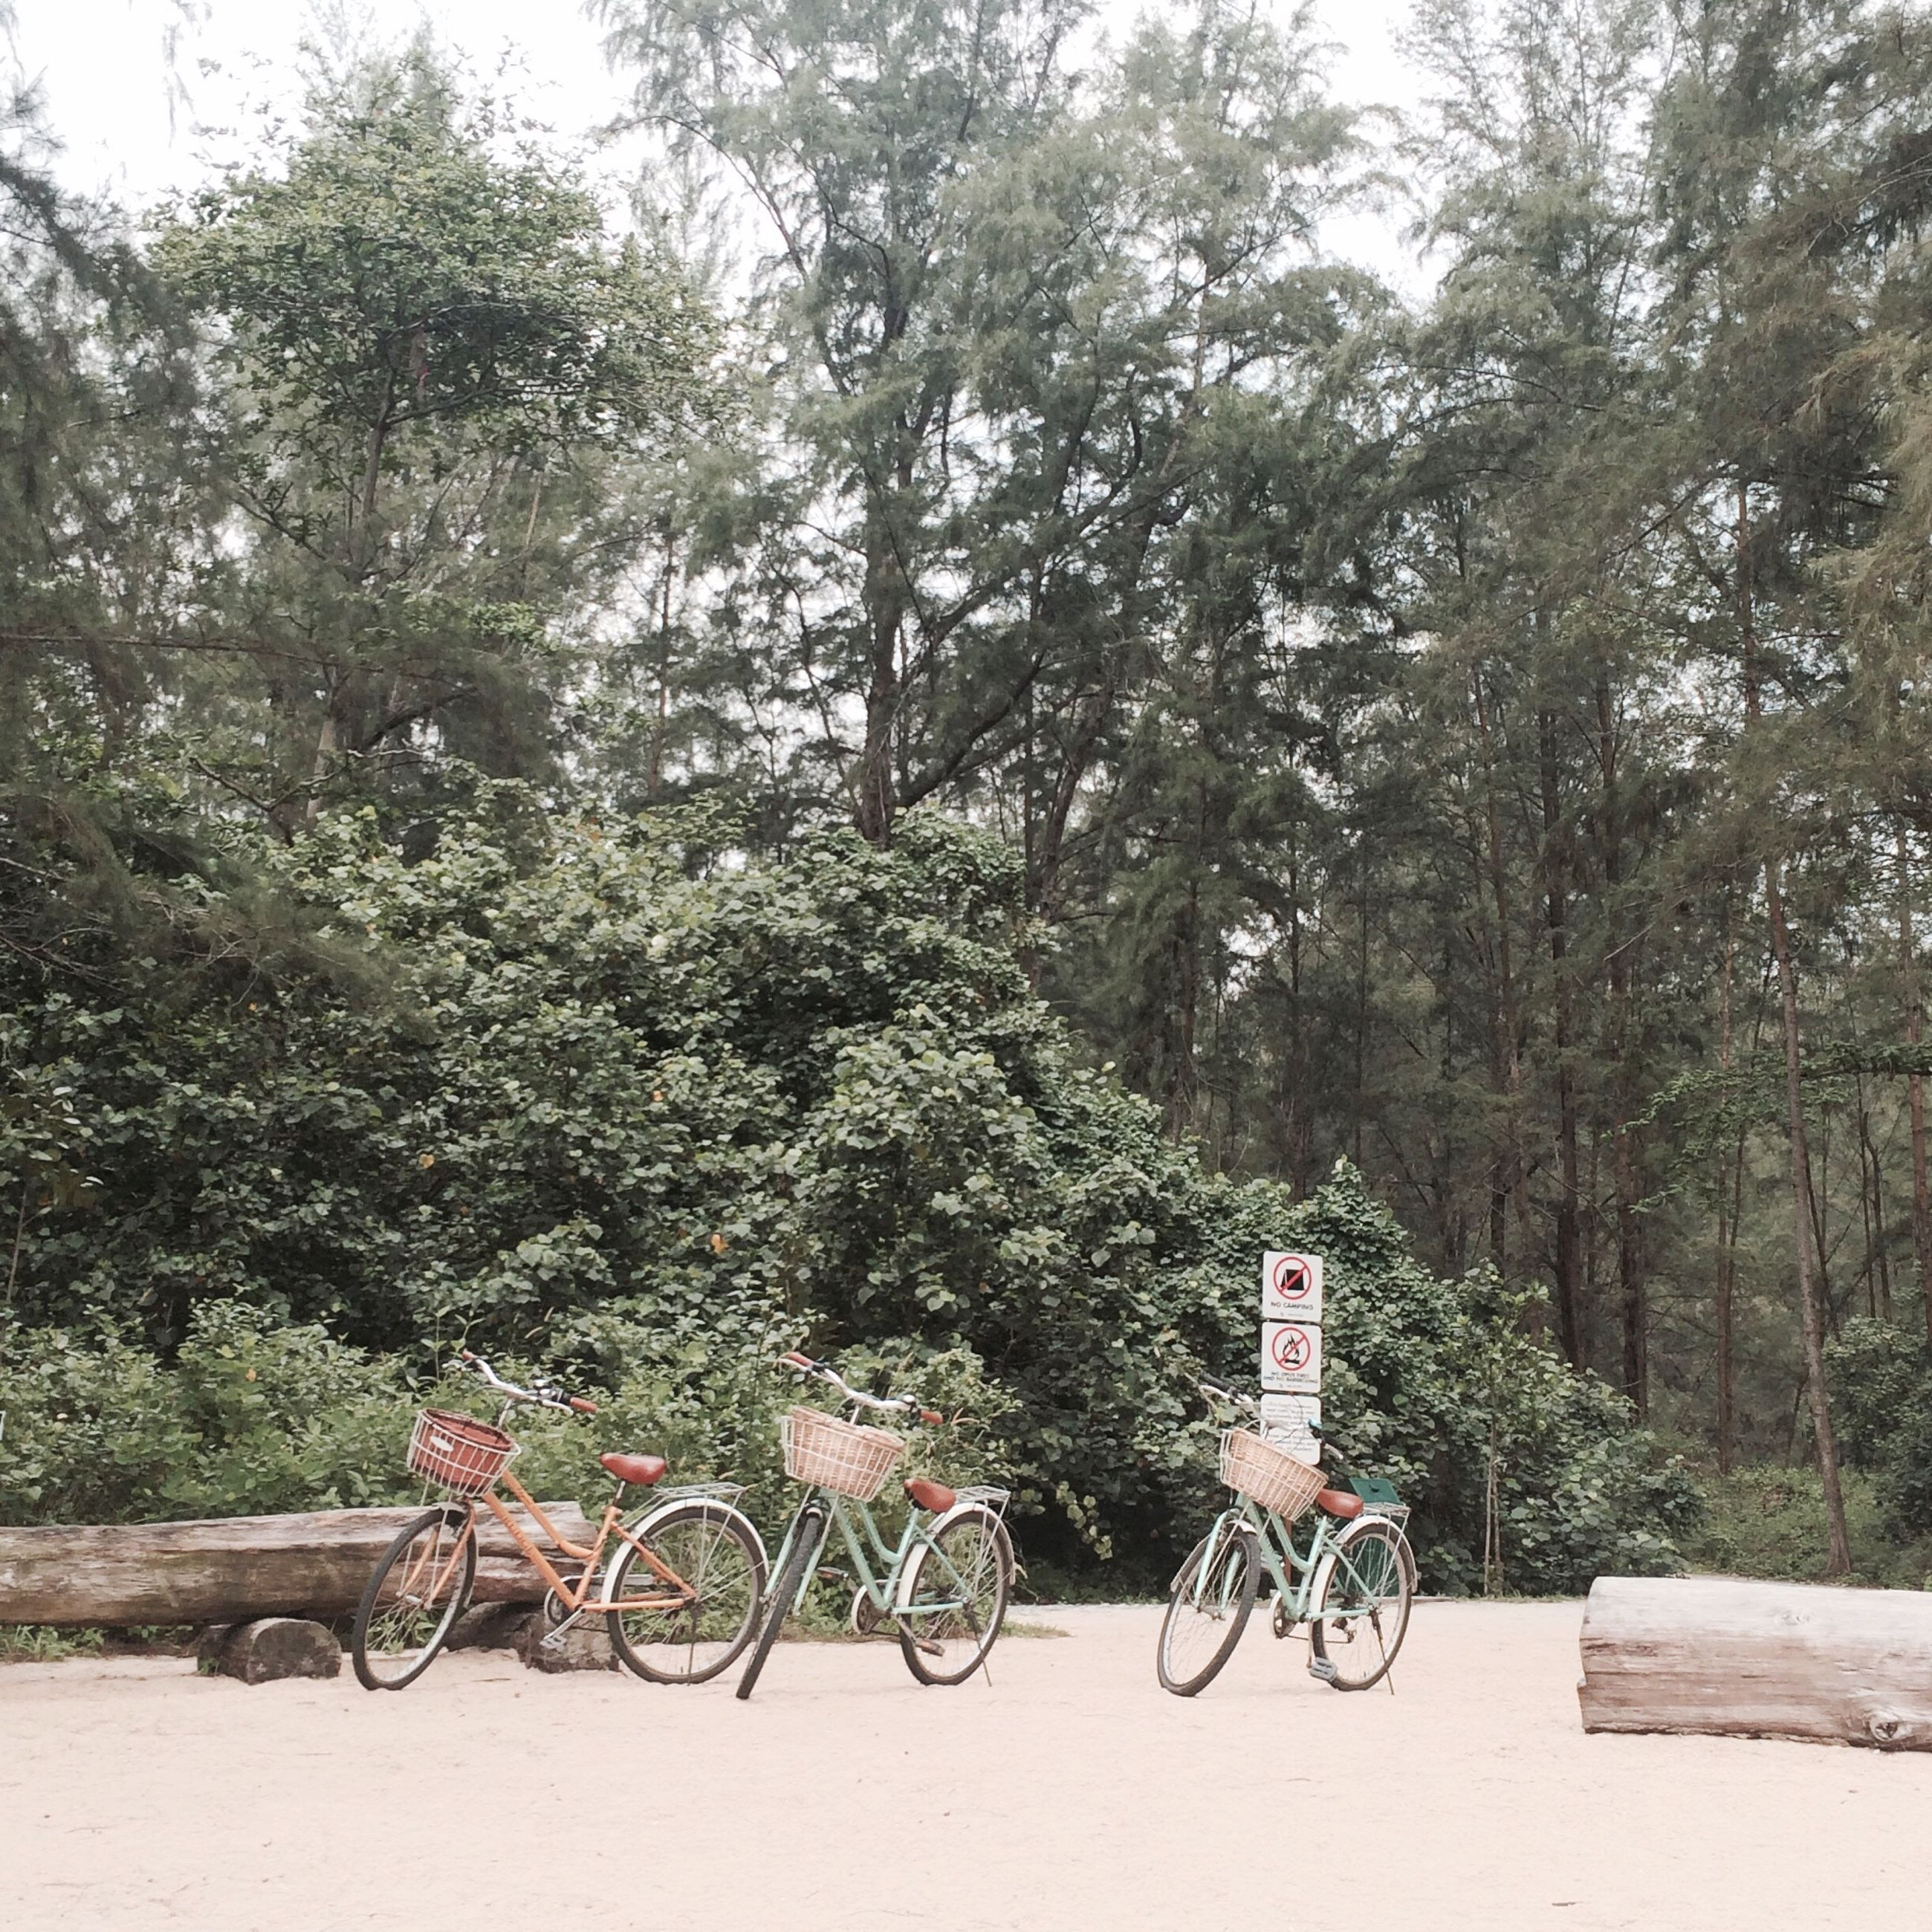 bicycle, mode of transport, transportation, land vehicle, tree, parked, stationary, parking, tranquility, cycle, nature, day, travel, growth, outdoors, no people, branch, beauty in nature, tranquil scene, absence